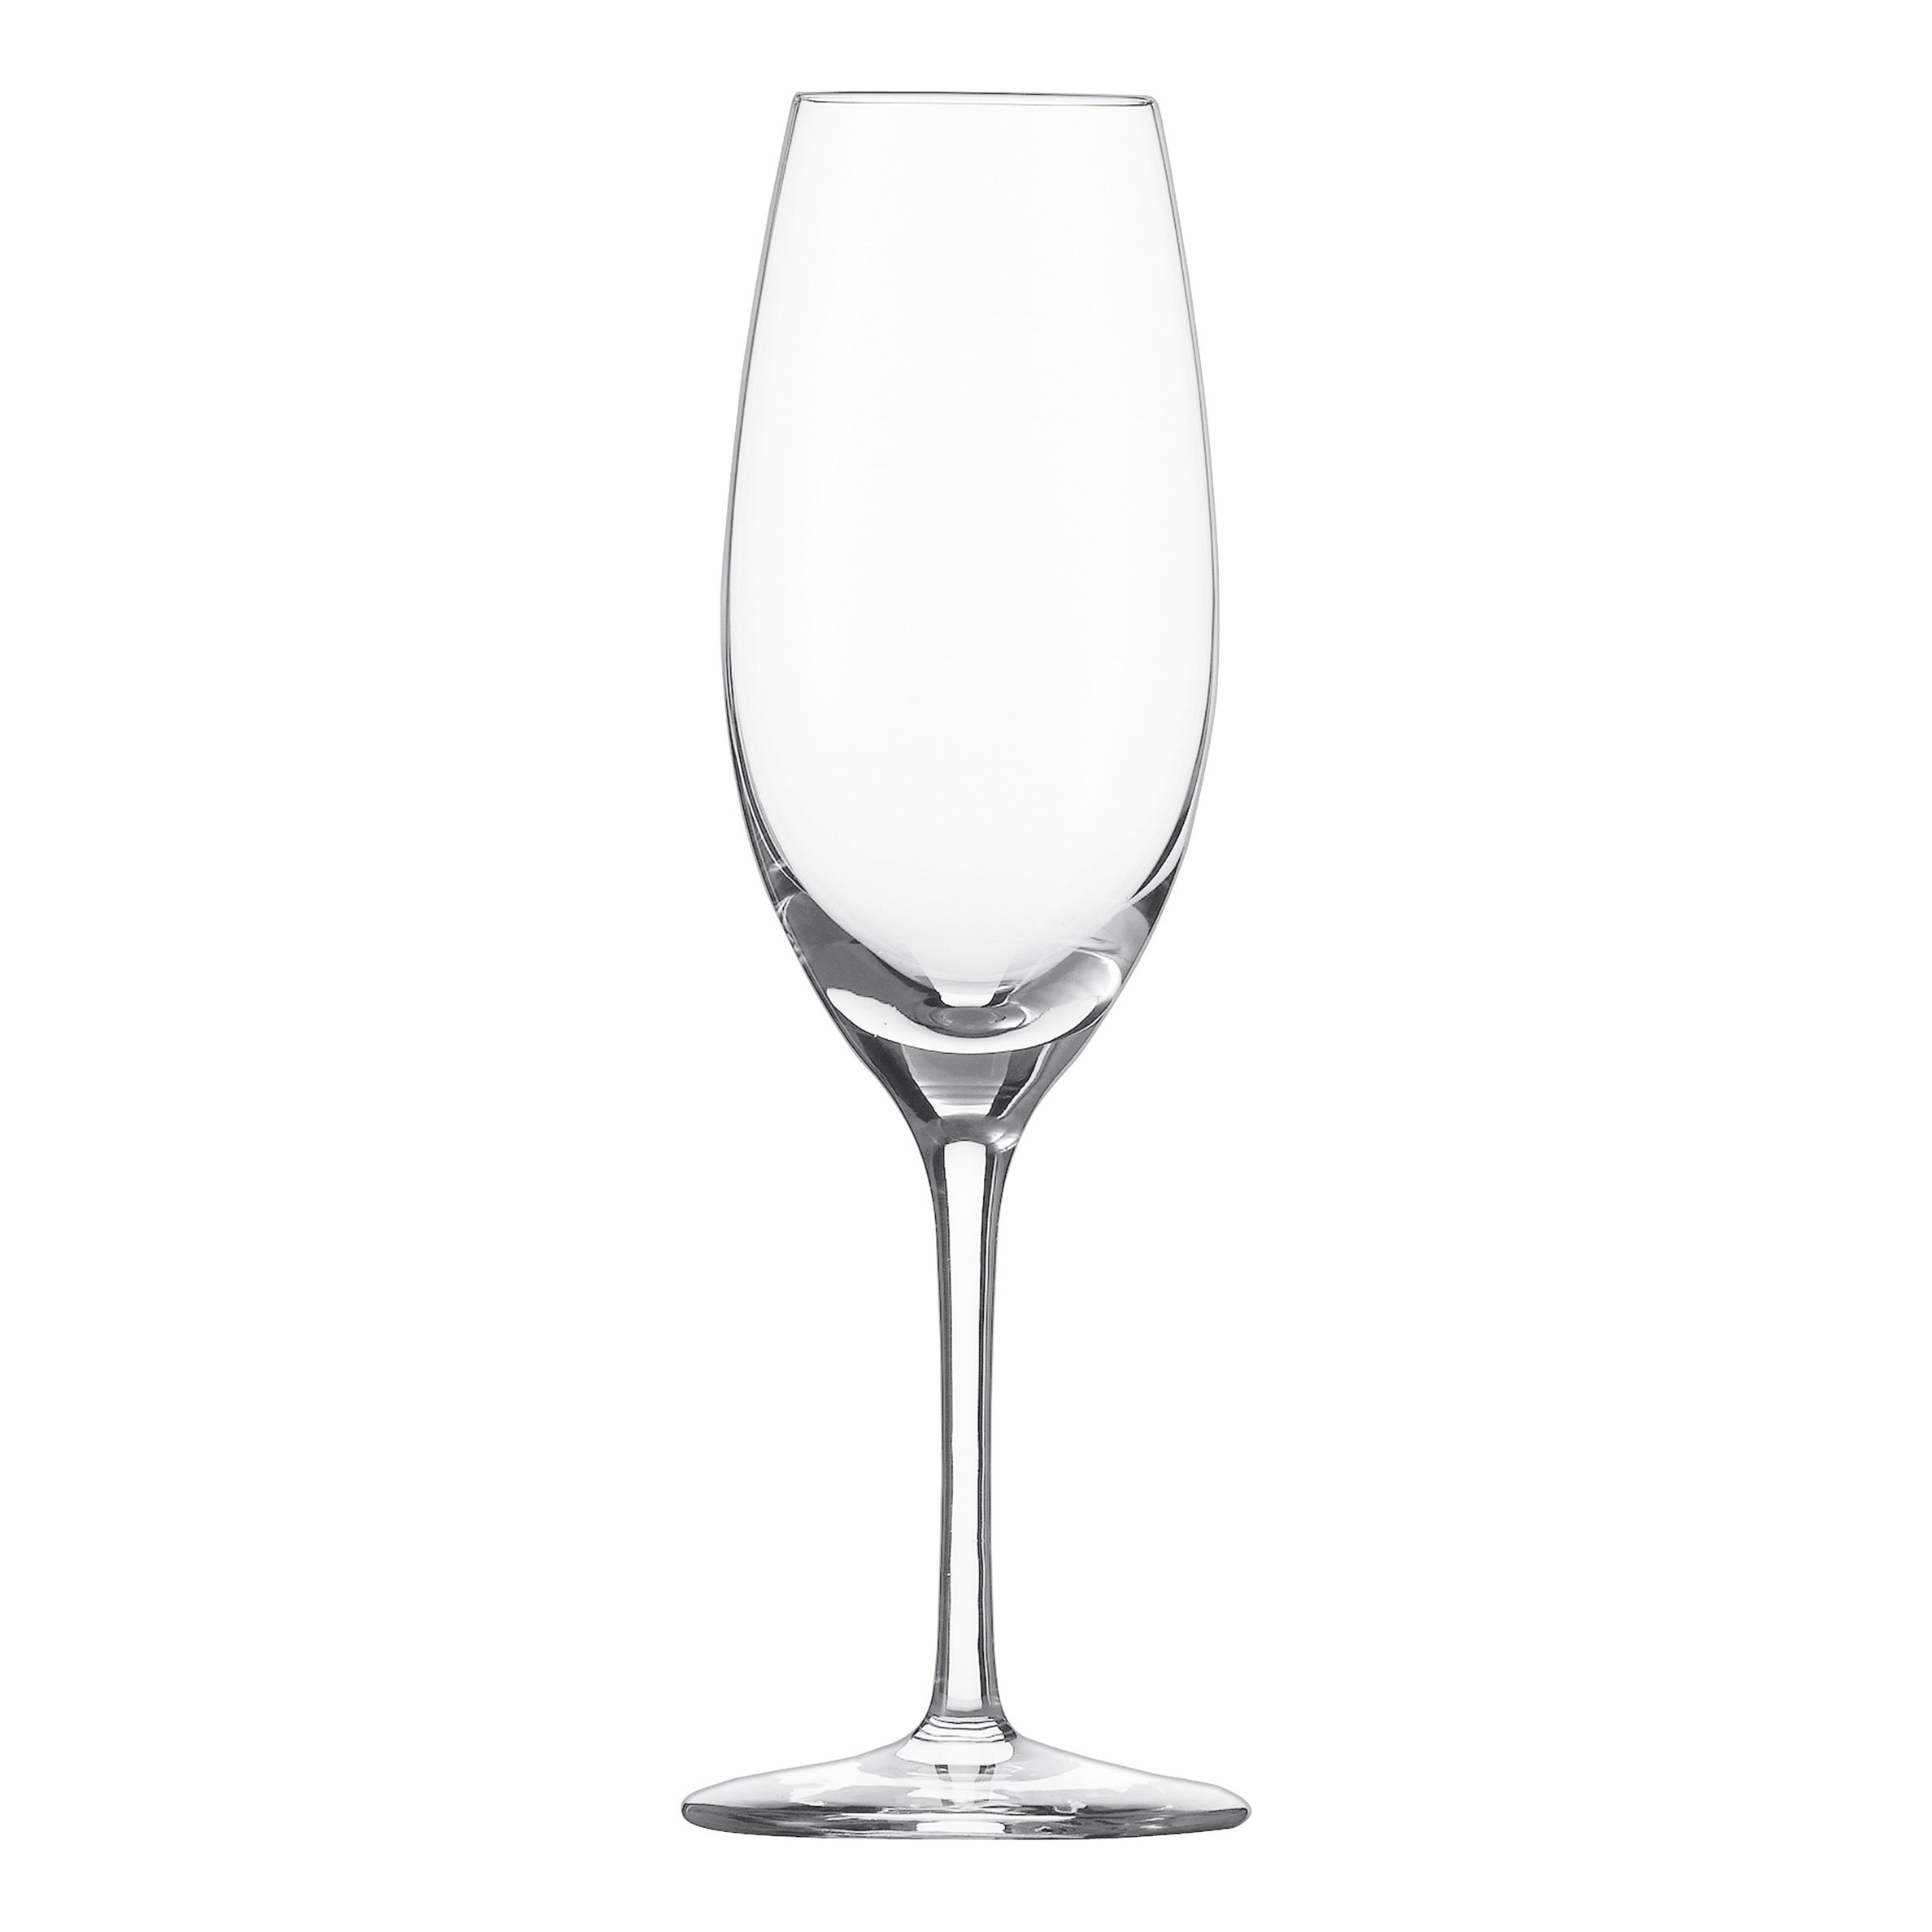 Schott Zwiesel Tritan Crystal Glass Cru Classic Stemware Collection Champagne Flute with Effervescence Points, 8.4-Ounce, Set of 6